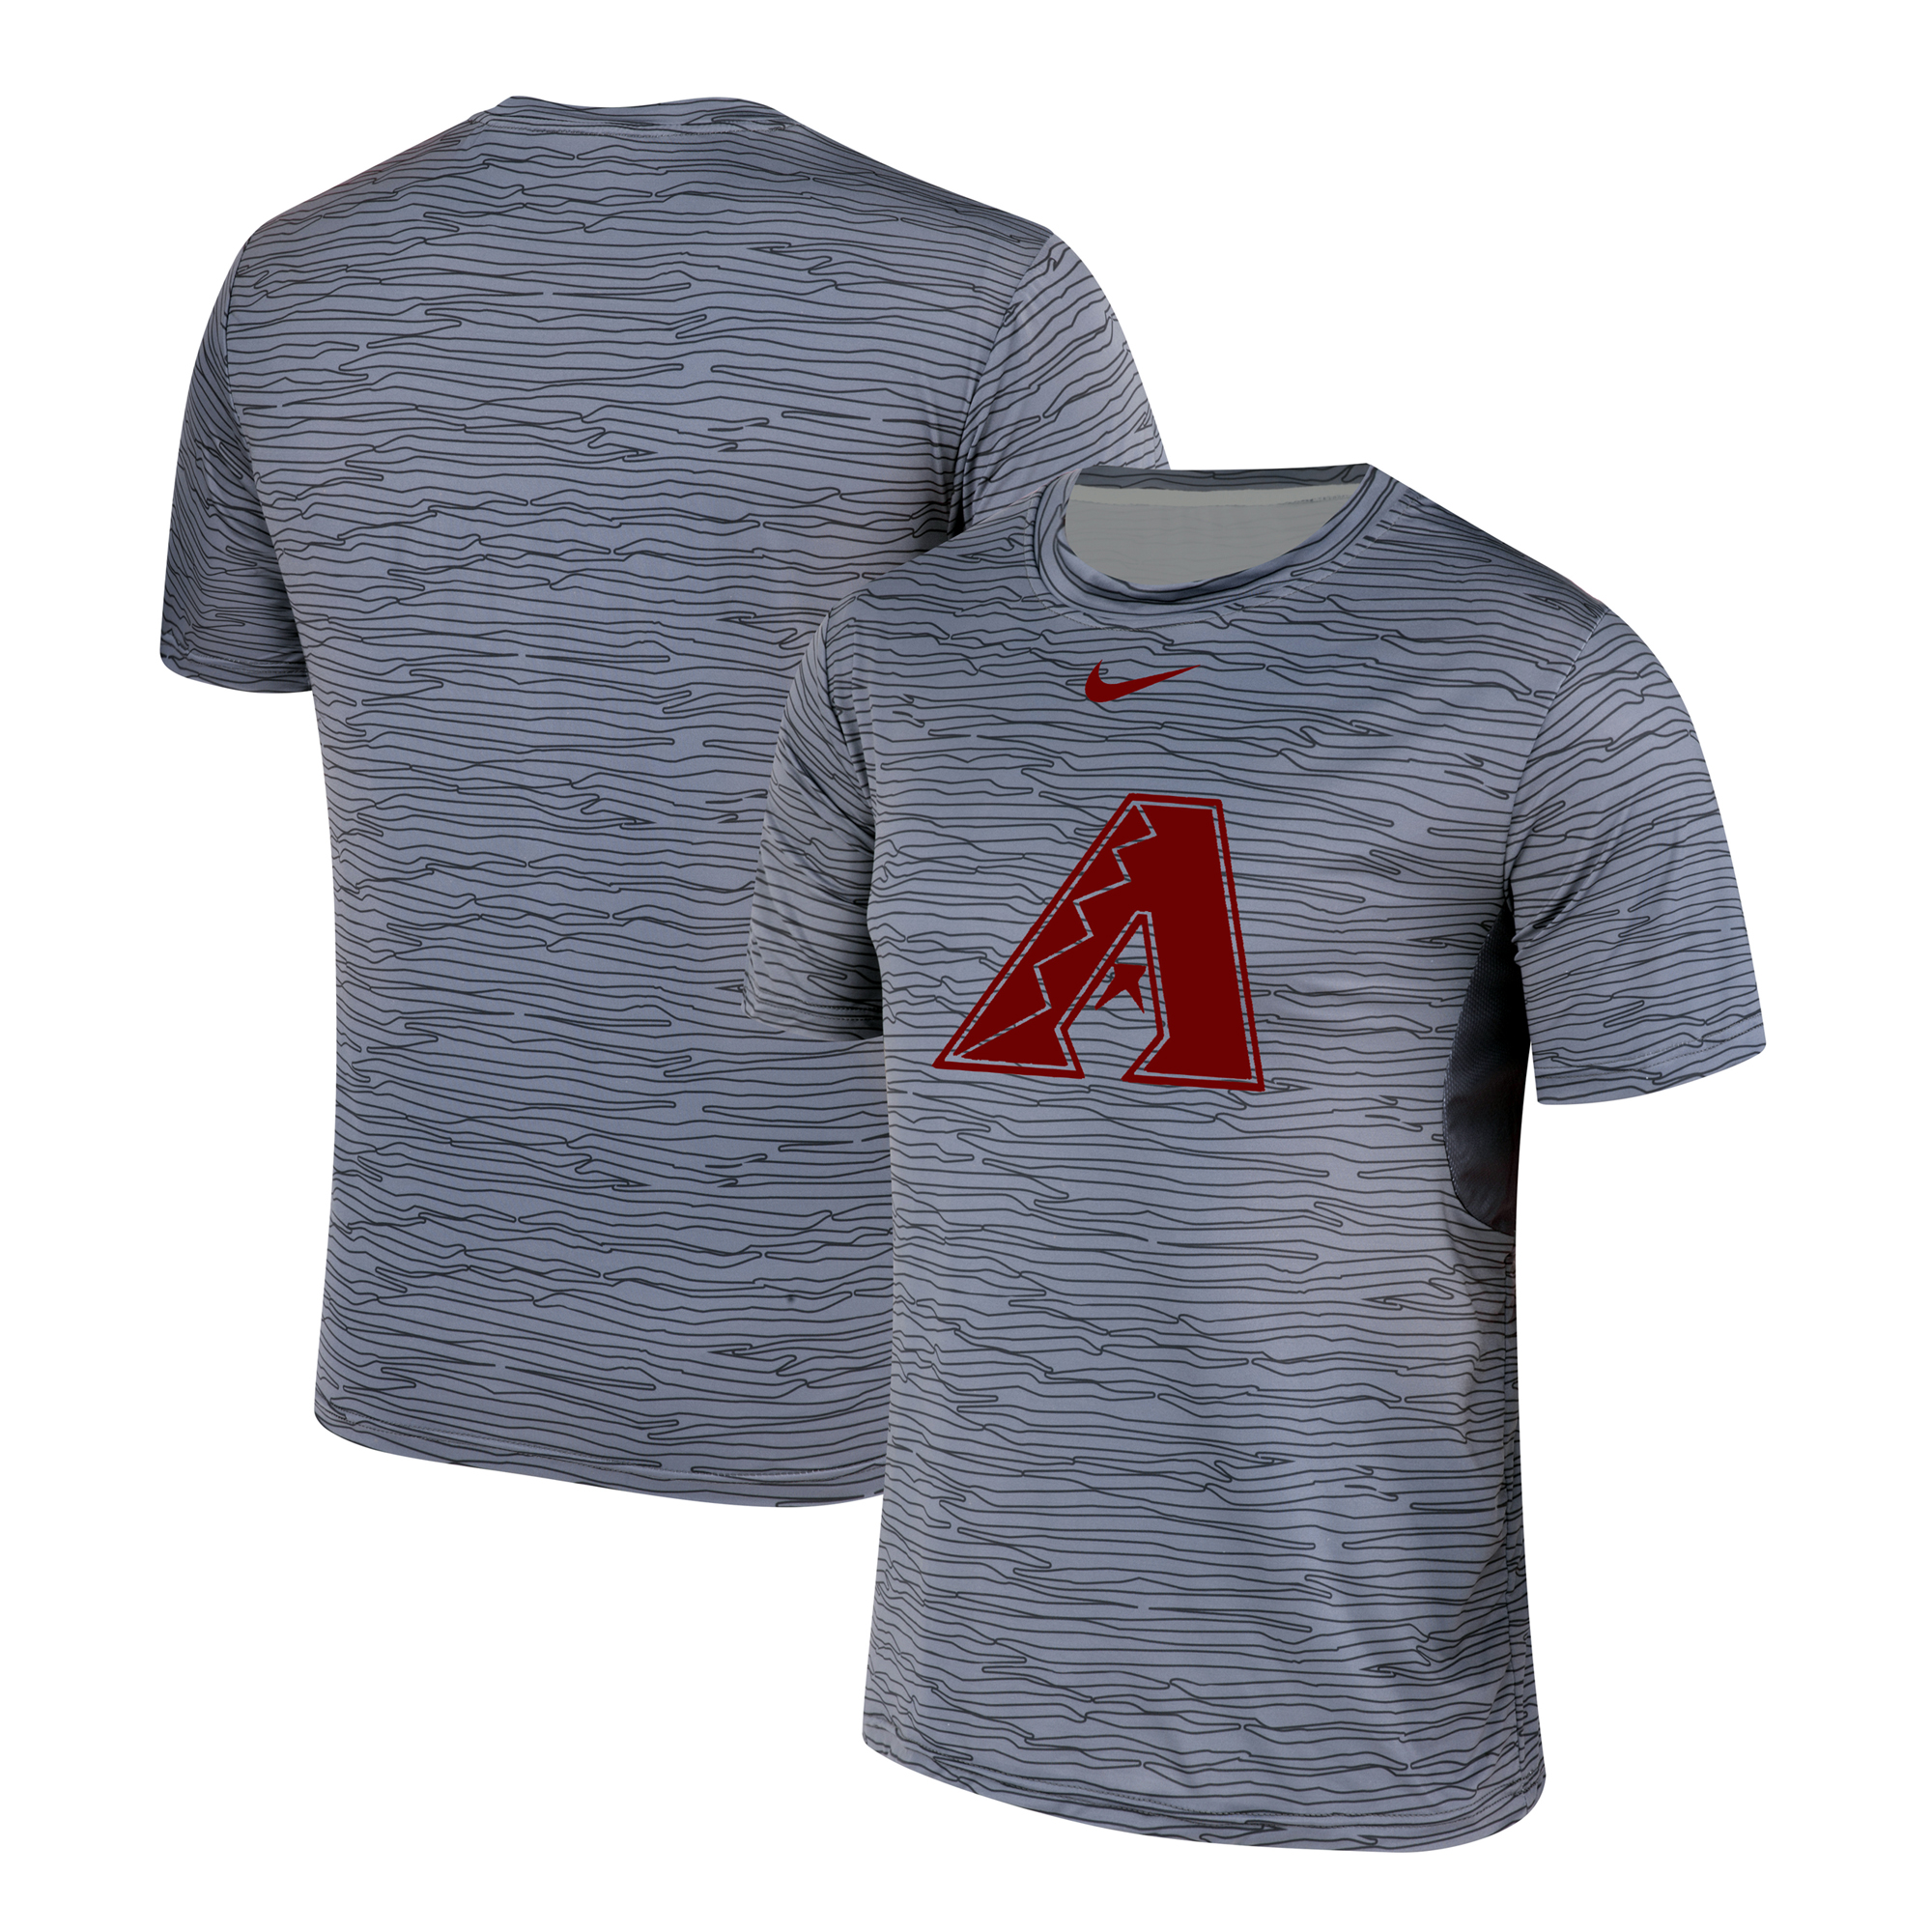 Nike Arizona Diamondbacks Crimson Gray Black Striped Logo Performance T-Shirt